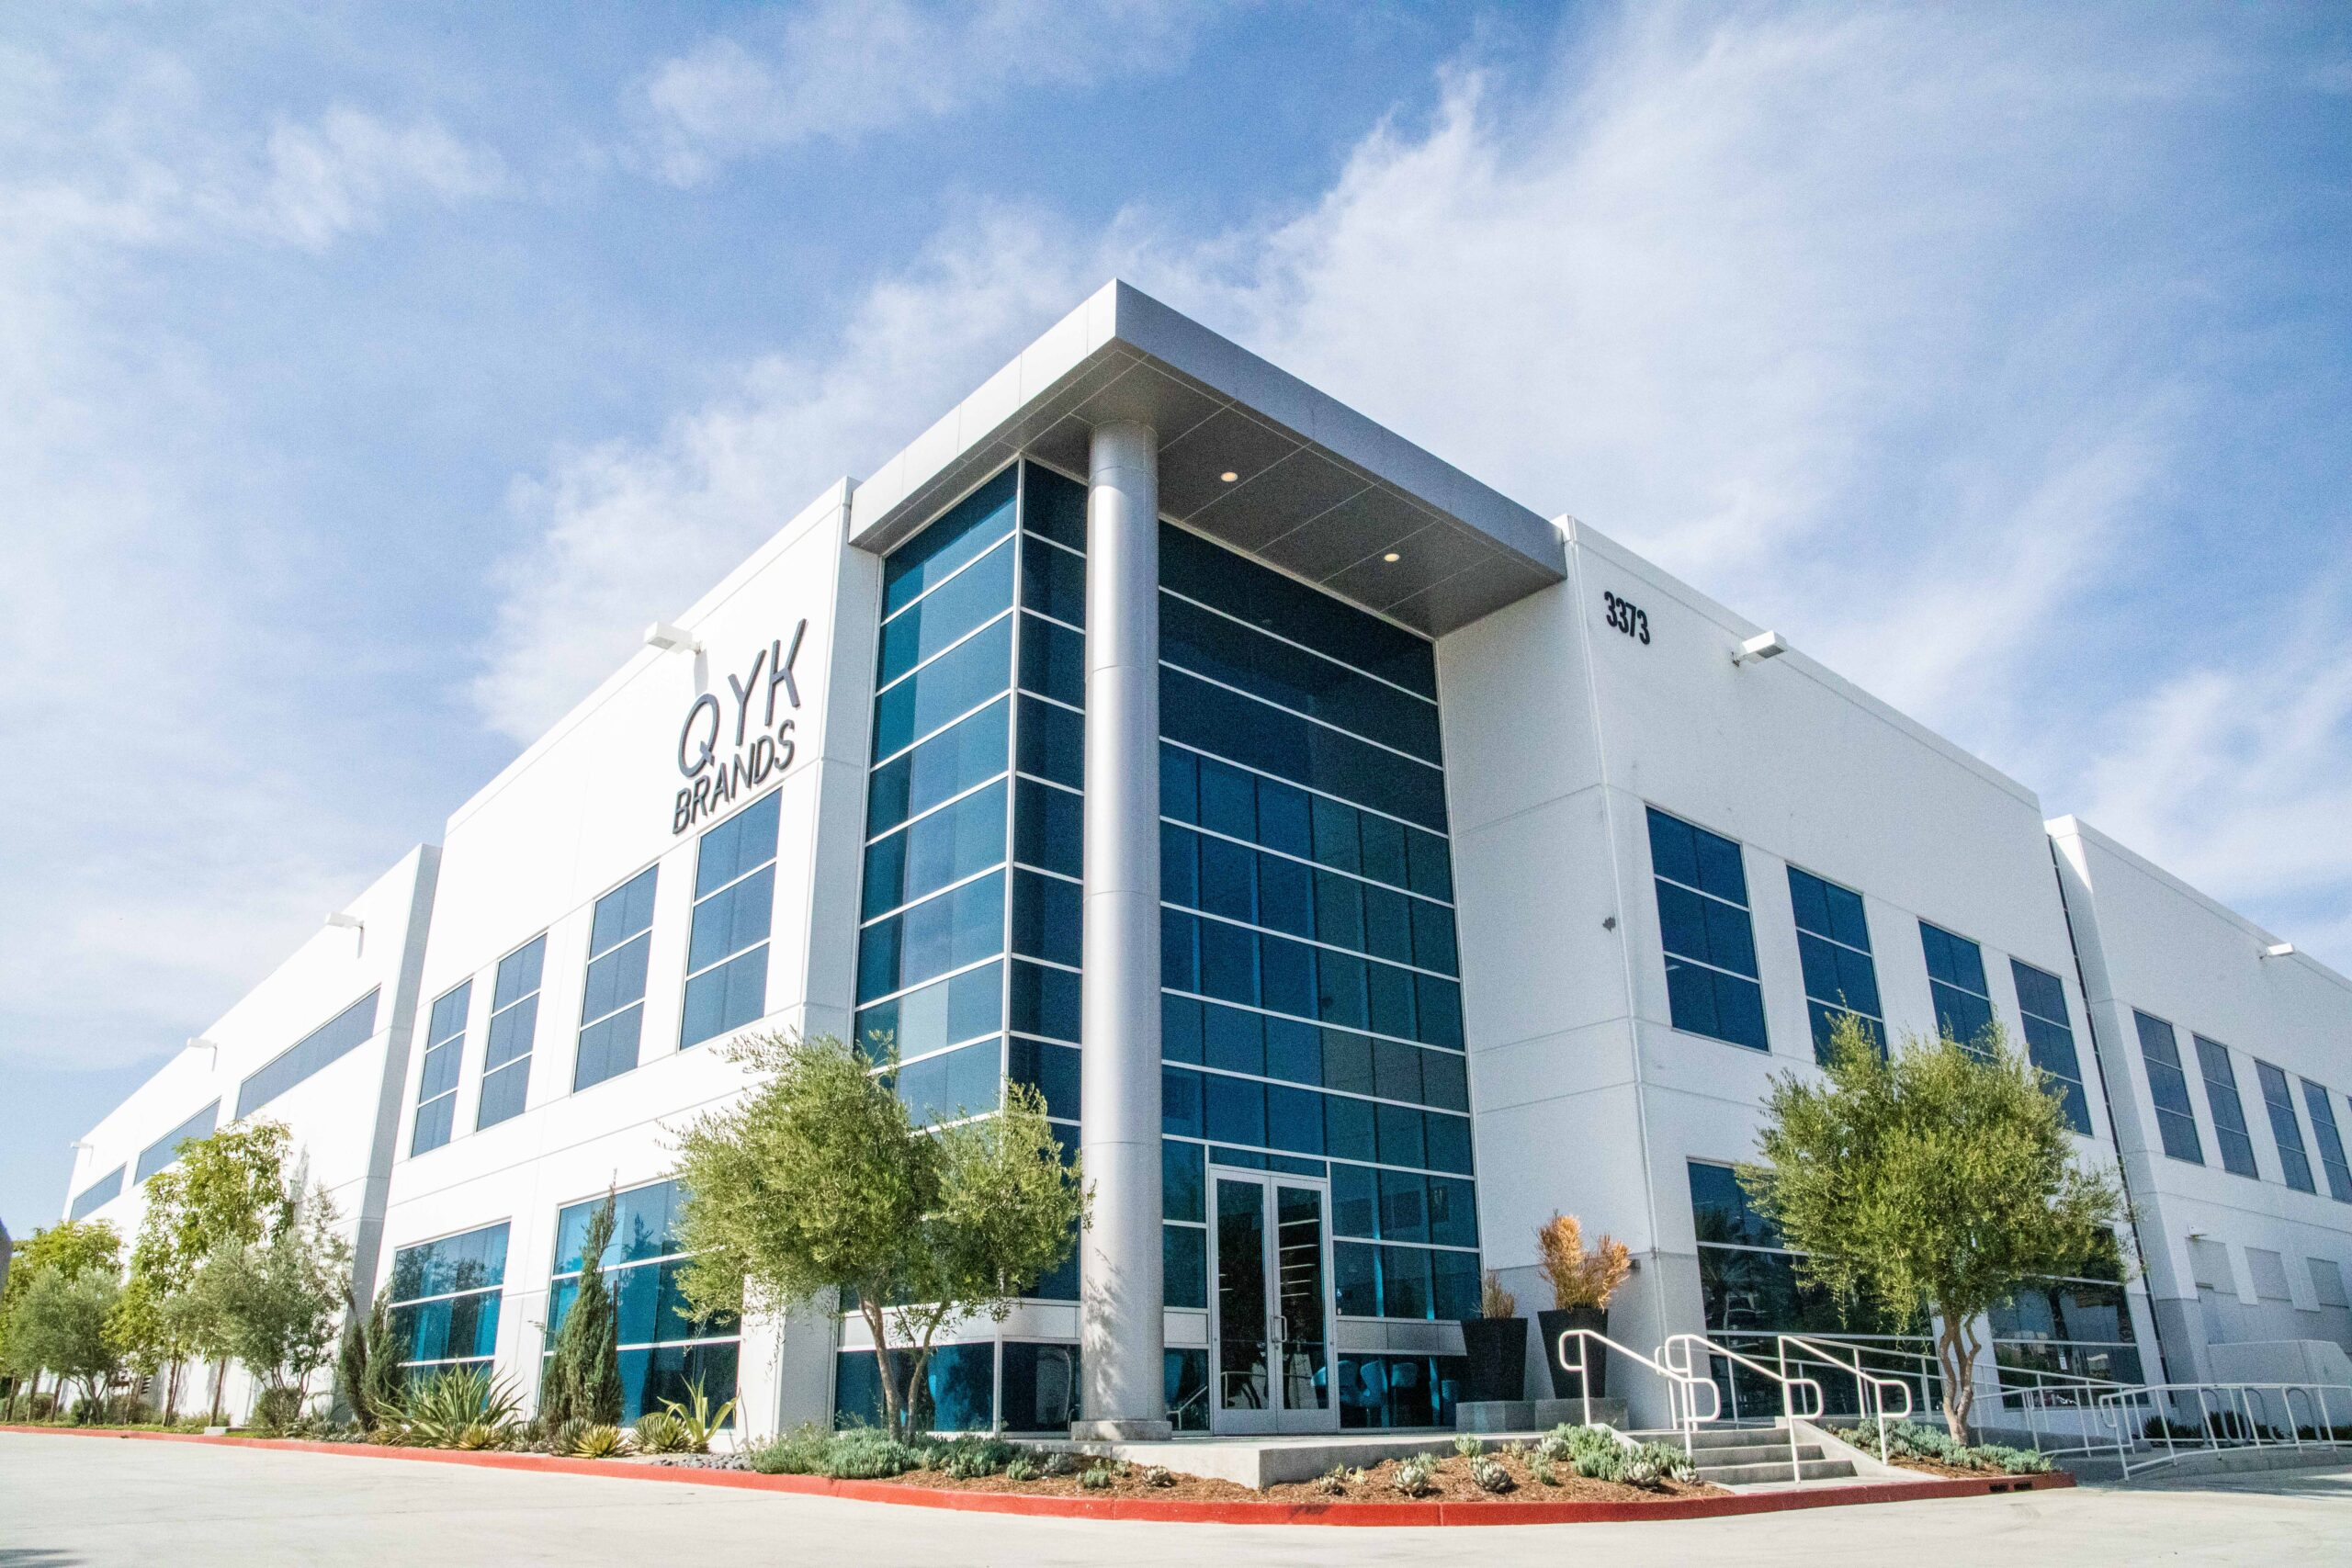 QYK Brands Expands to 130,000 Square Feet Facility Targeted to Produce EPA-registered Disinfectant Wipes